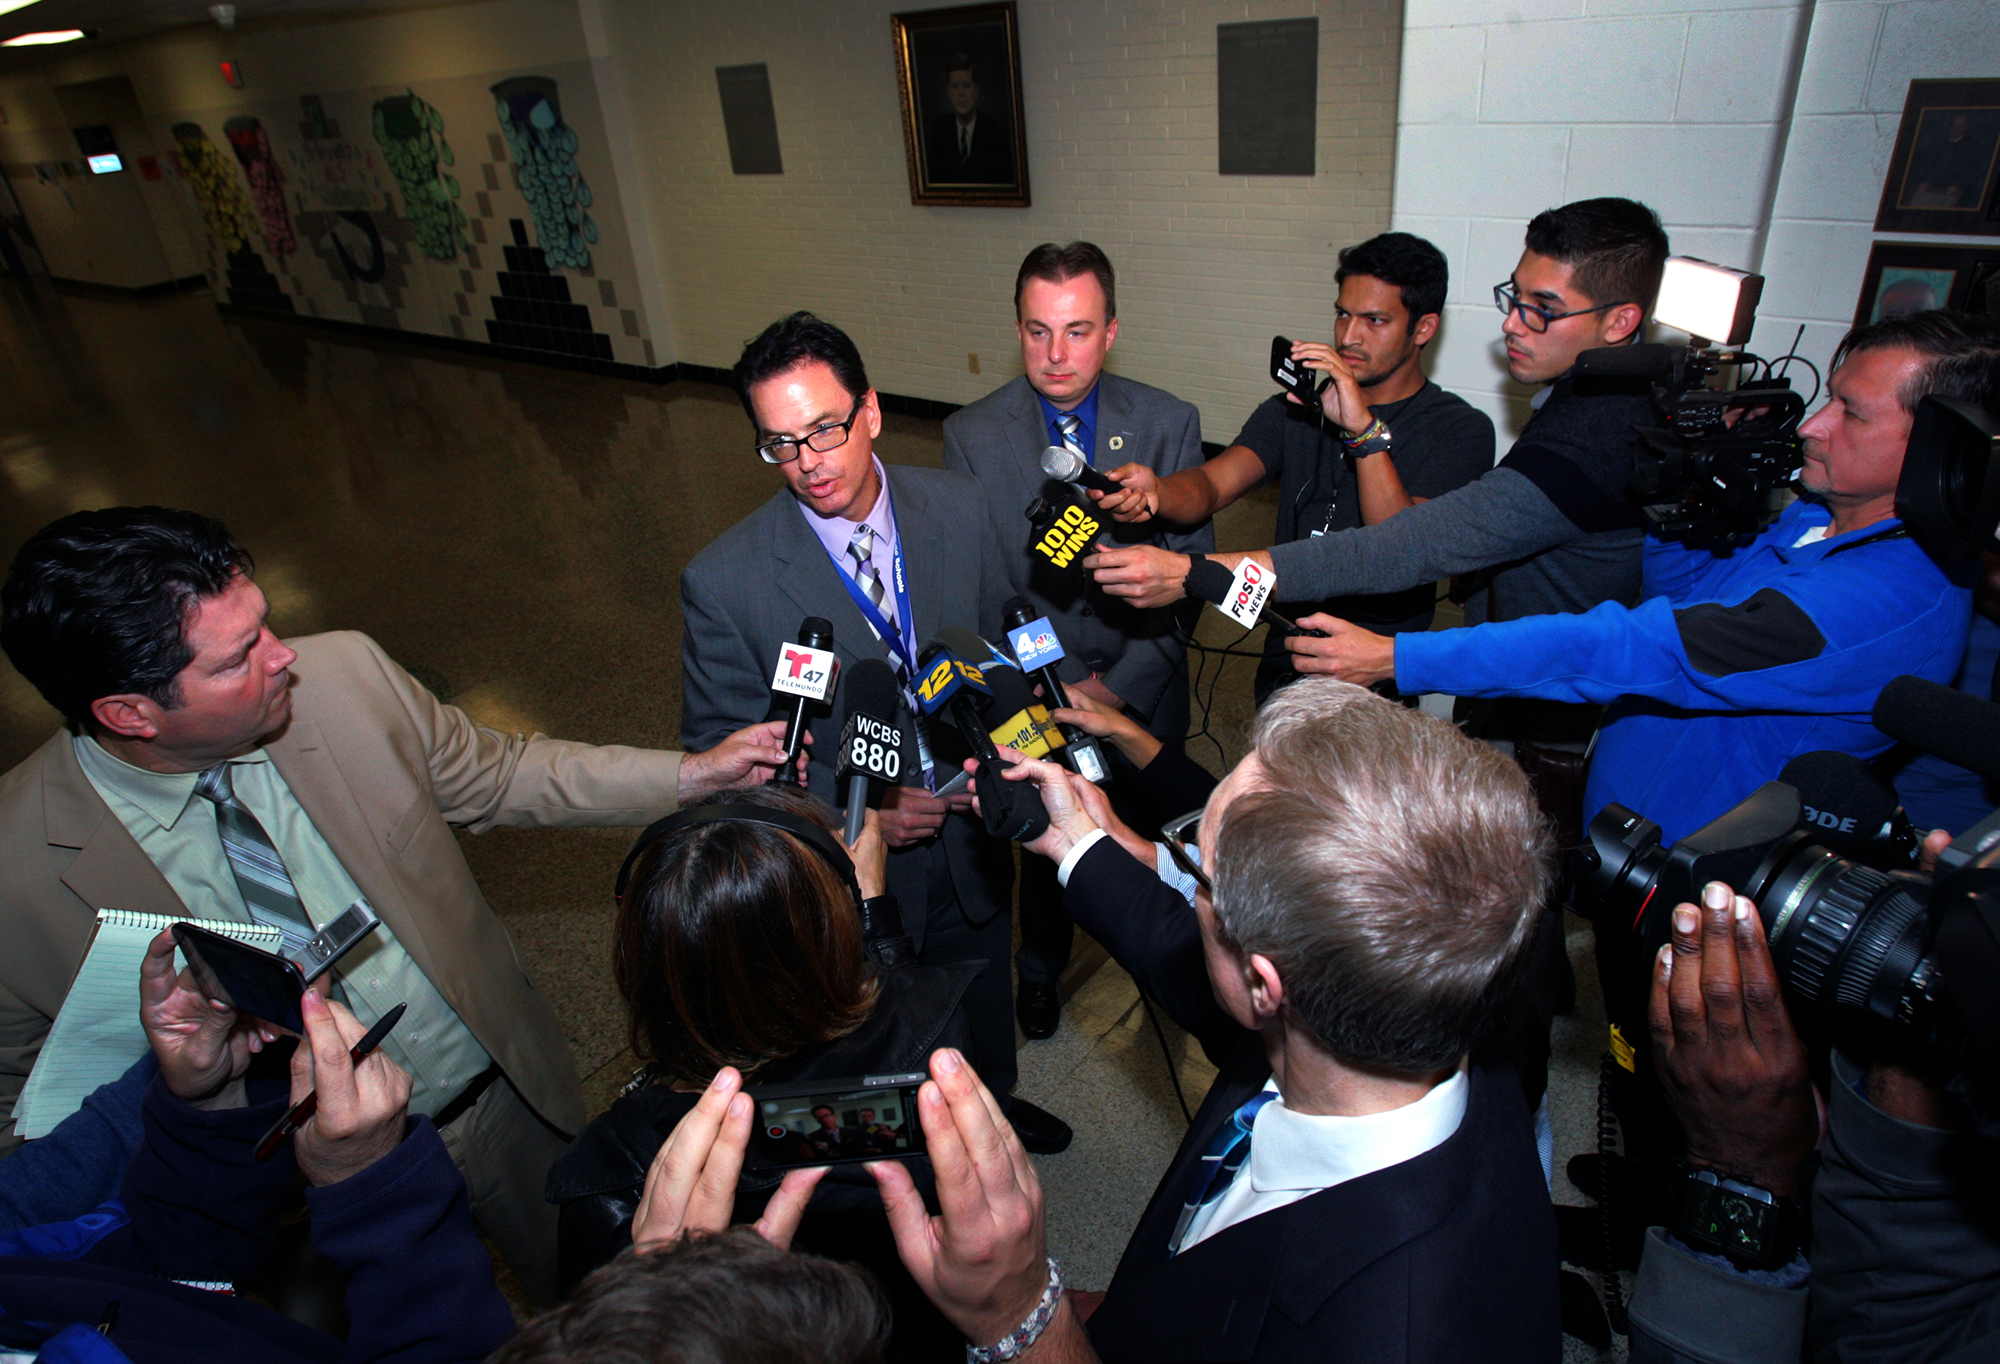 Sayreville superintendent  of schools Richard Labbe talking to the press after the parents meeting Monday. / Ed Pagliarini, Gannett New Jersey